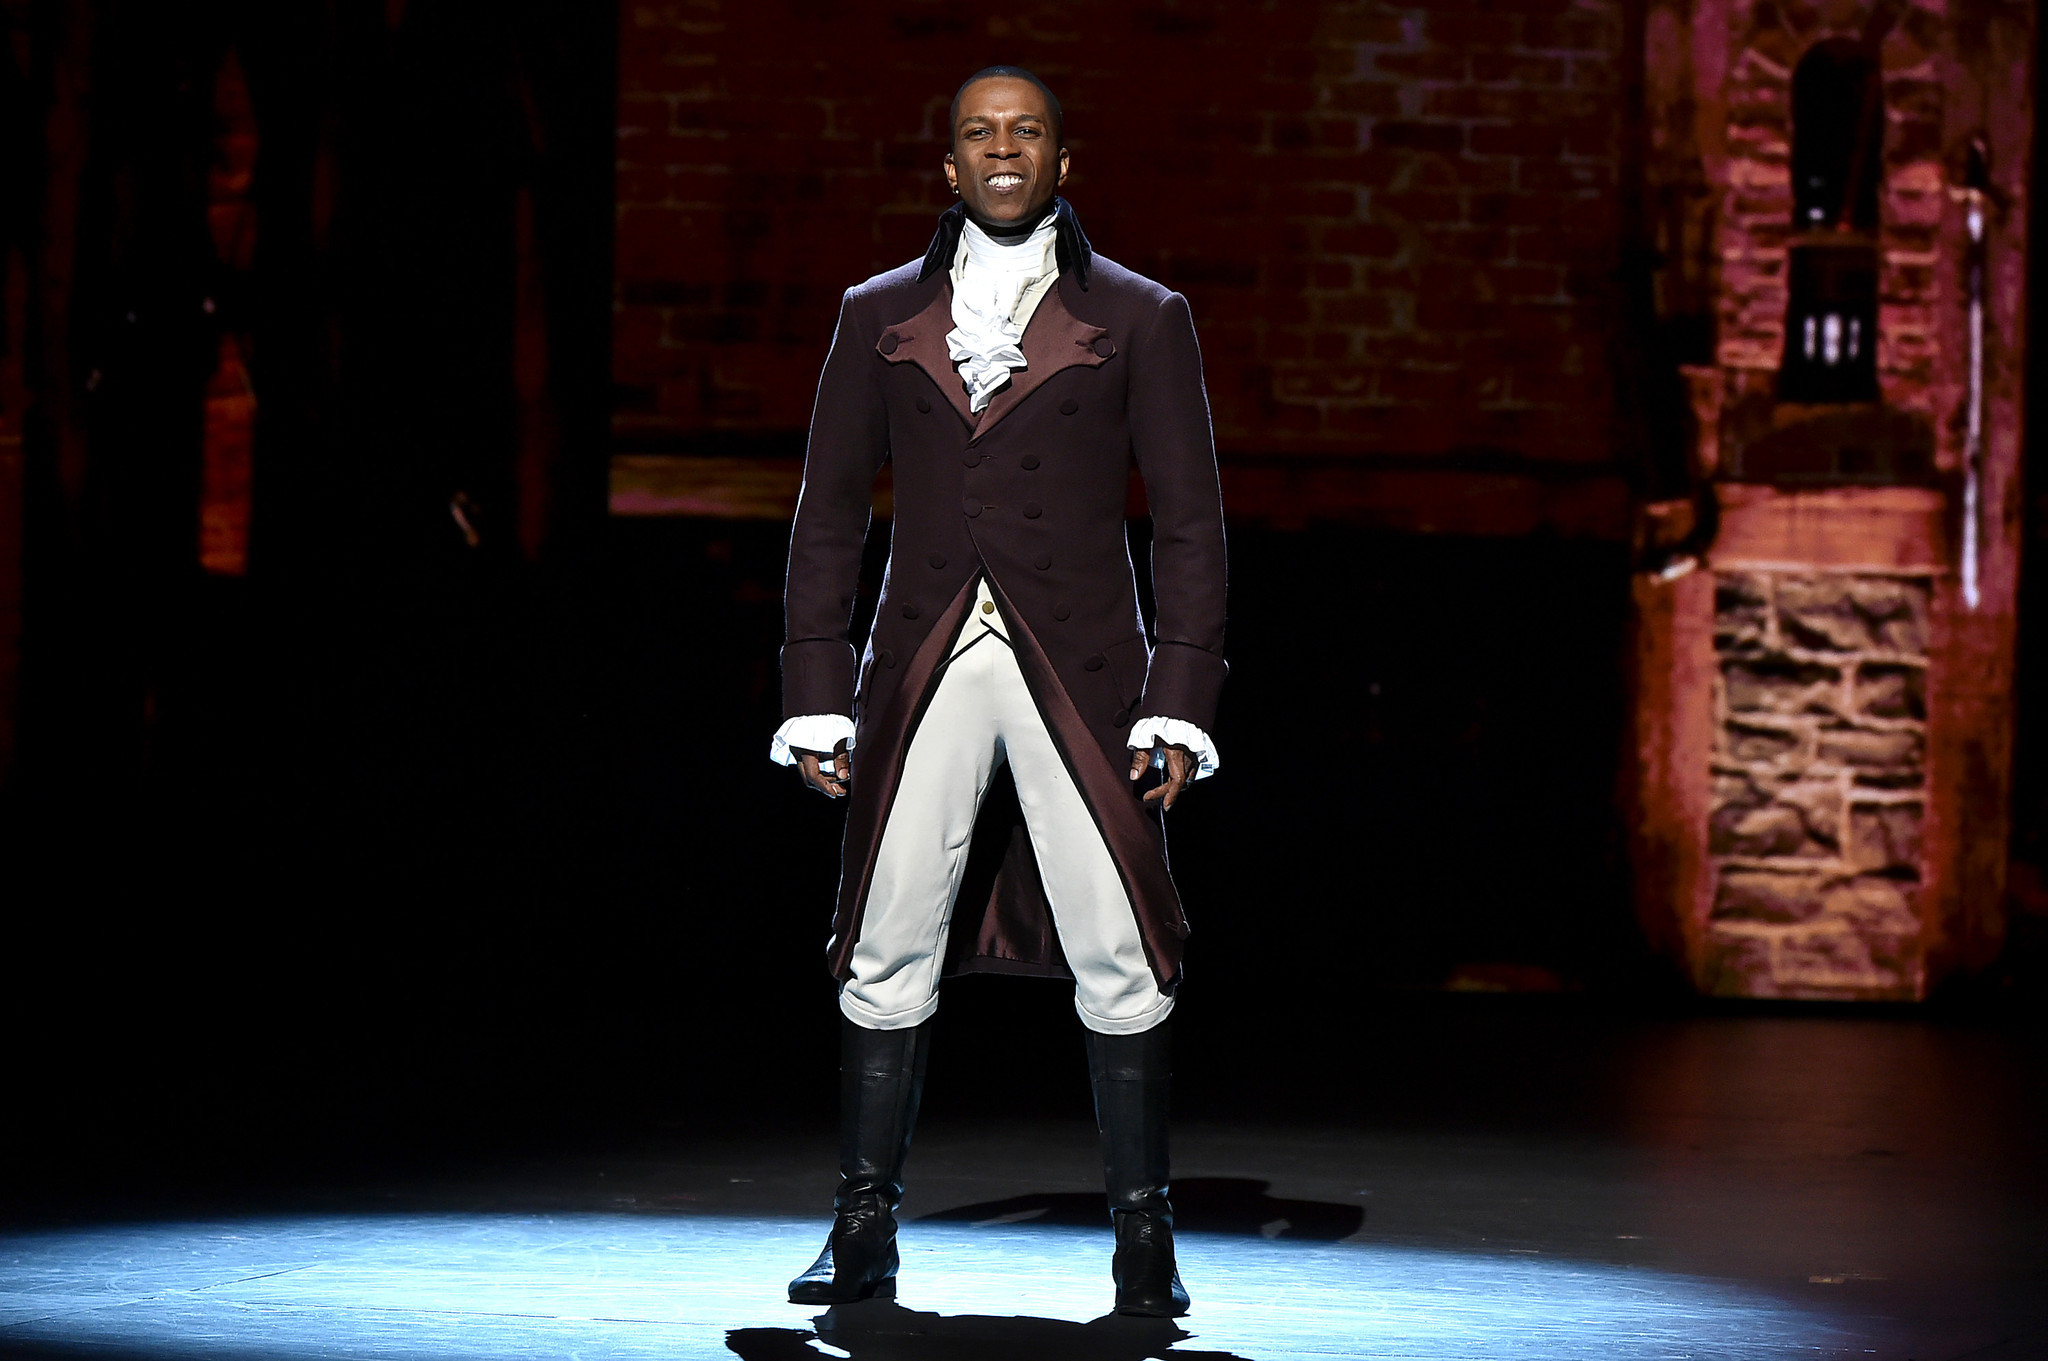 Leslie Odom Jr Wins For Lead Actor In A Musical For